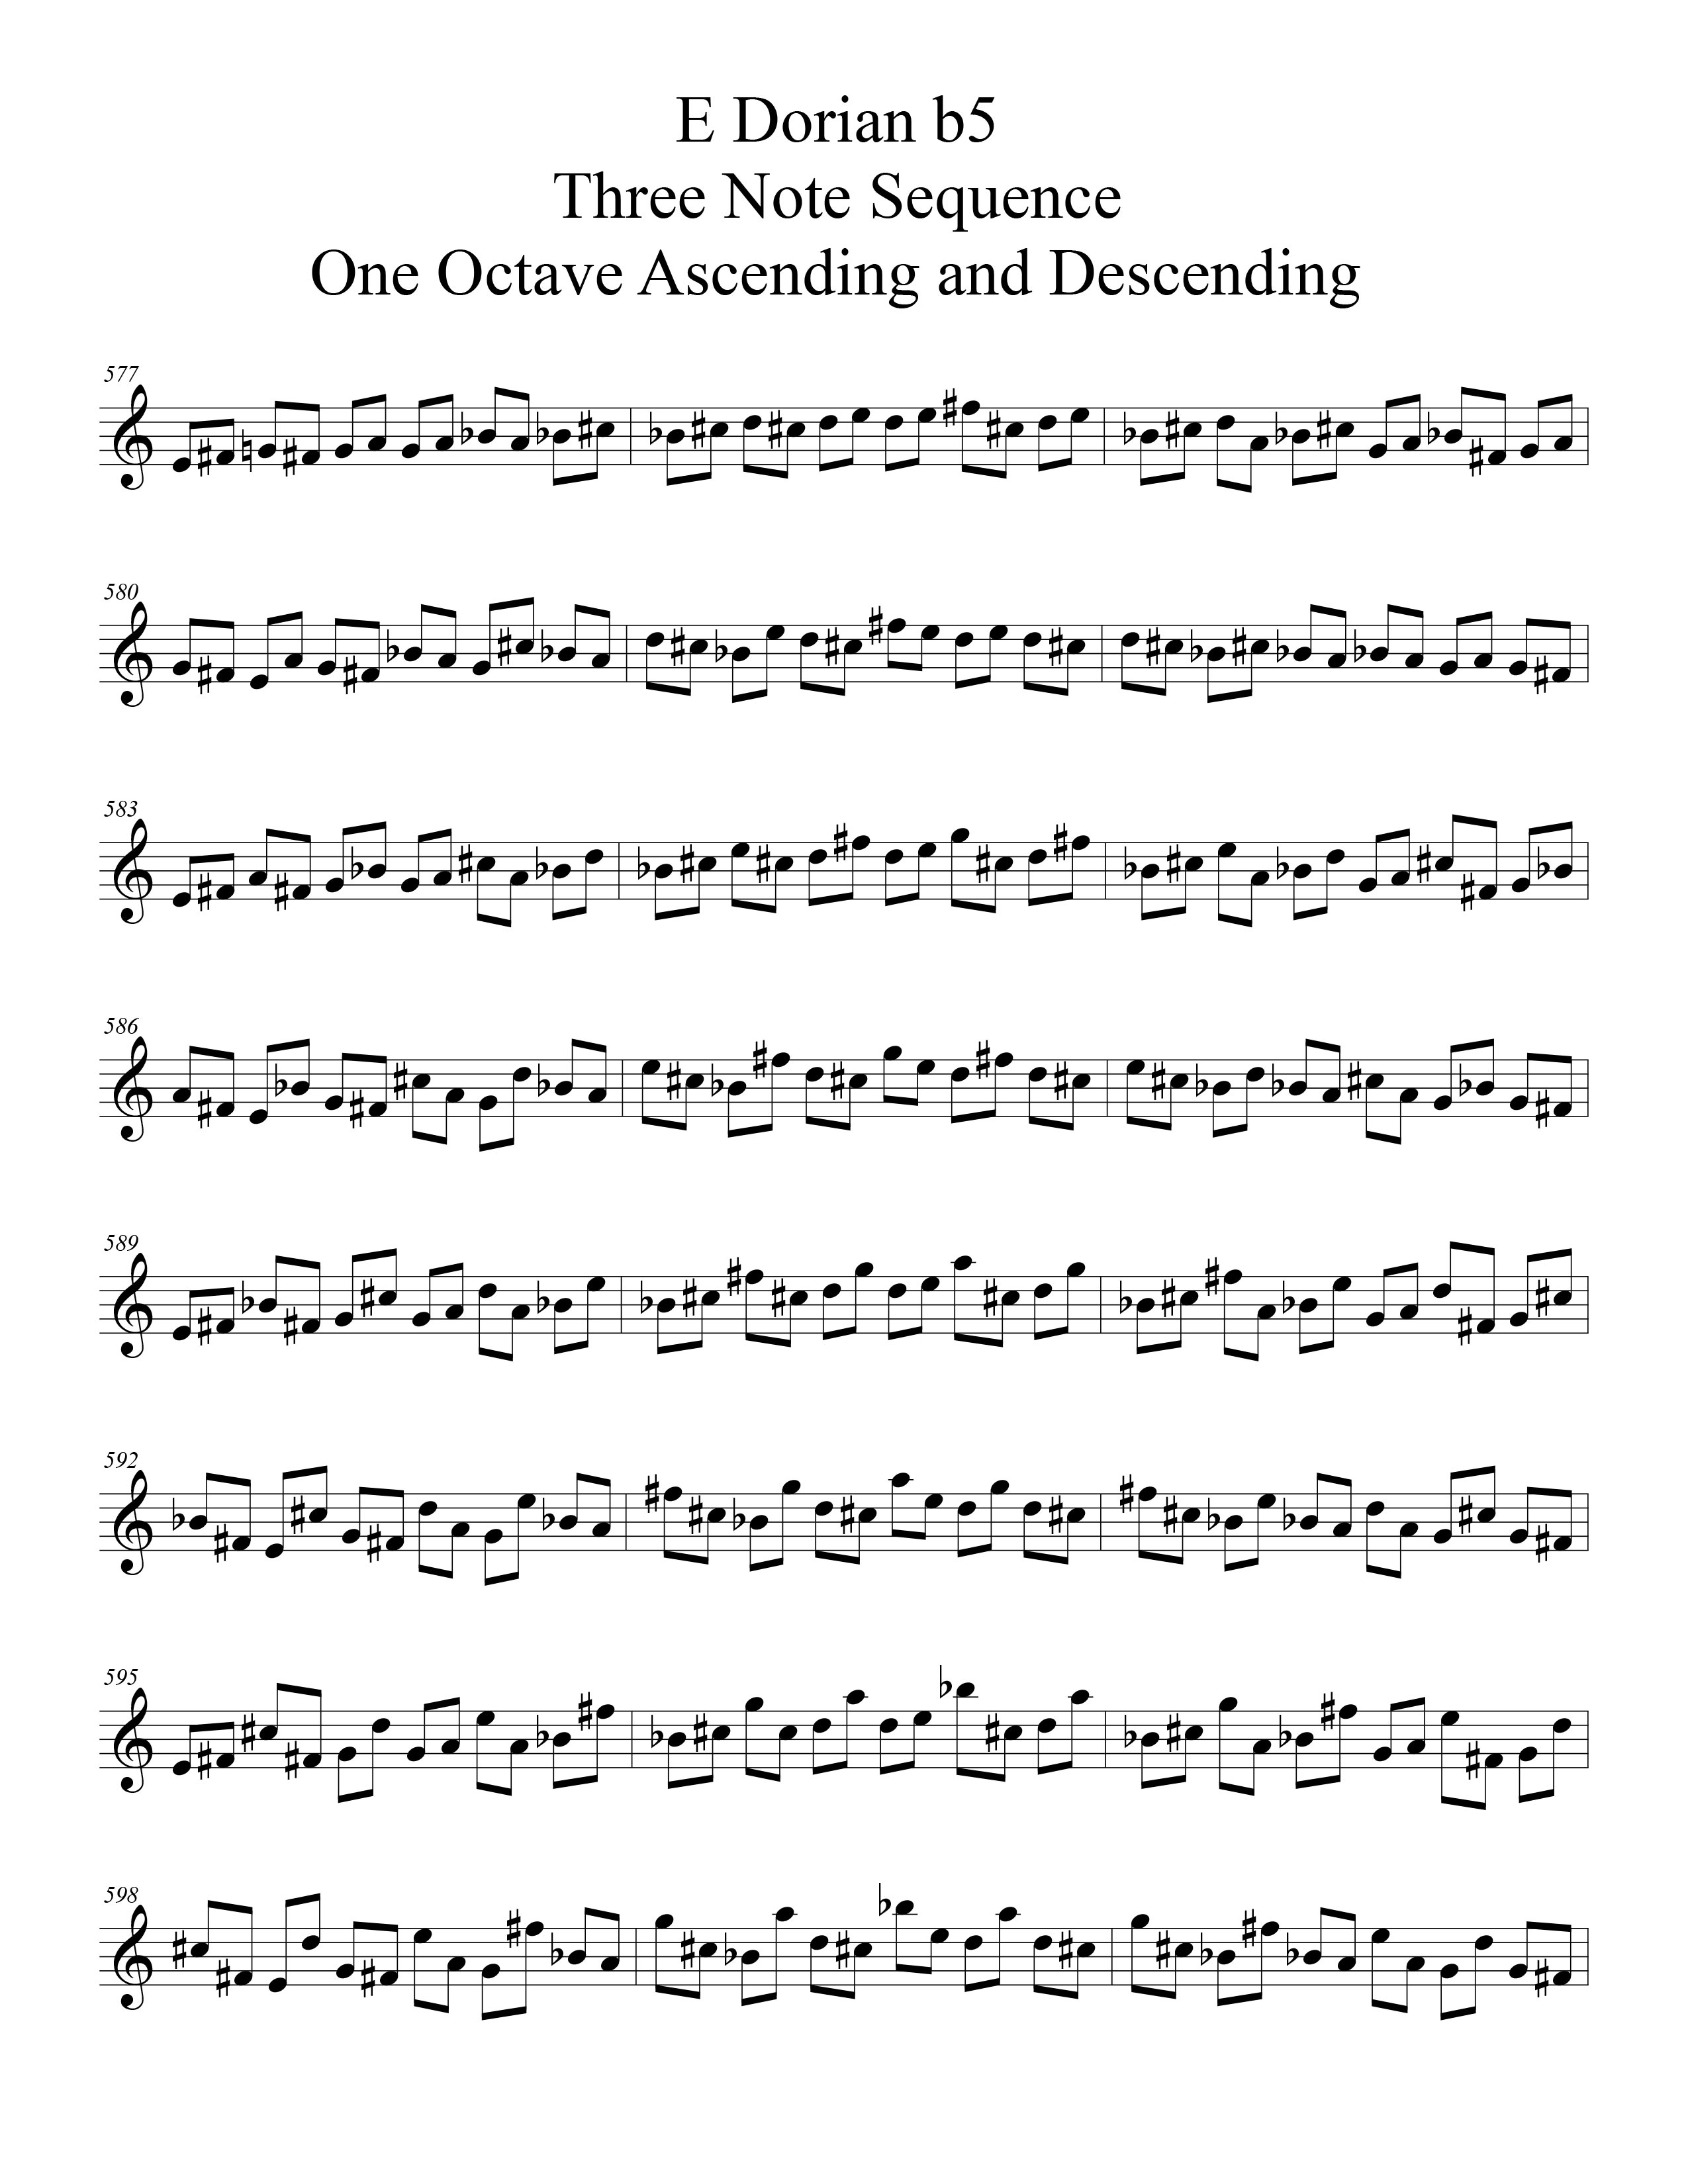 E Dorian b5 Scale Modal Sequencing 3 Note Group 3 for all instrumentalist by Bruce Arnold for Muse Eek Publishing Company